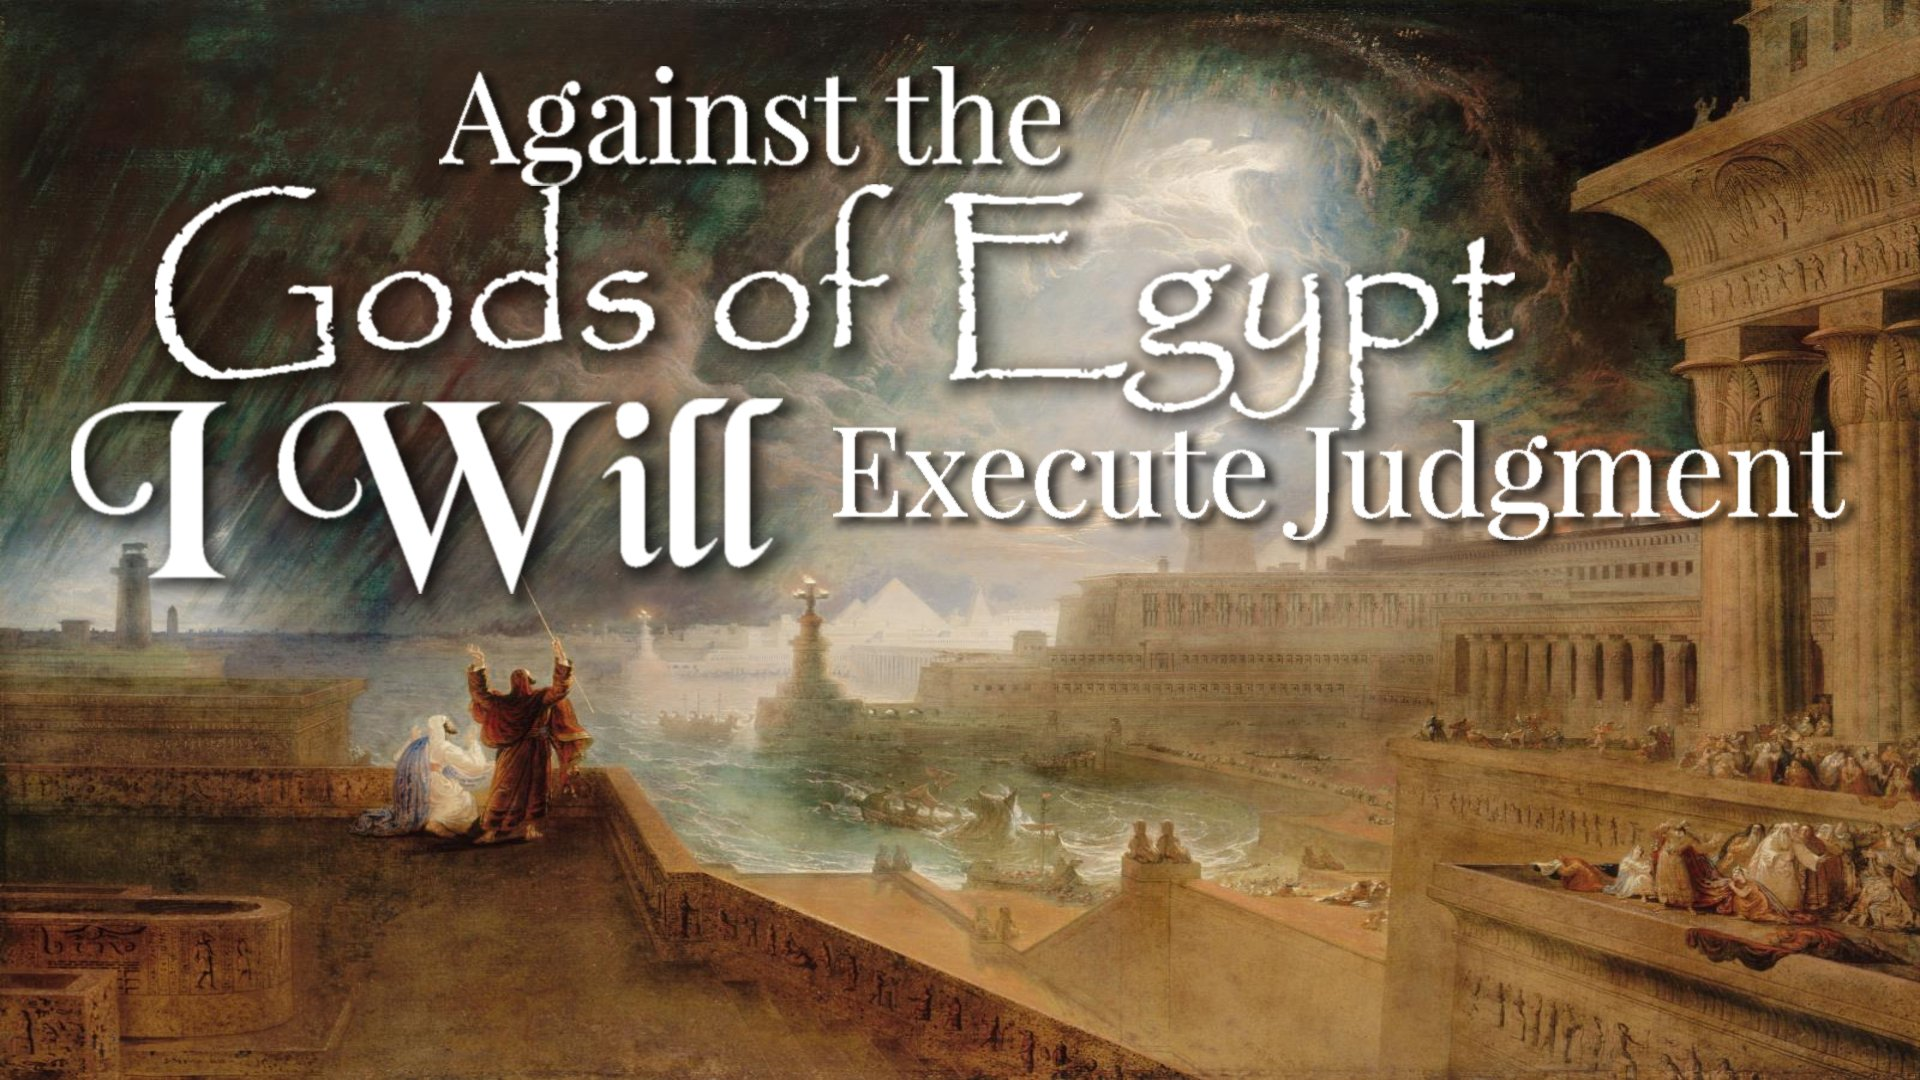 11 Against the gods of Egypt, I Will Execute Judgment